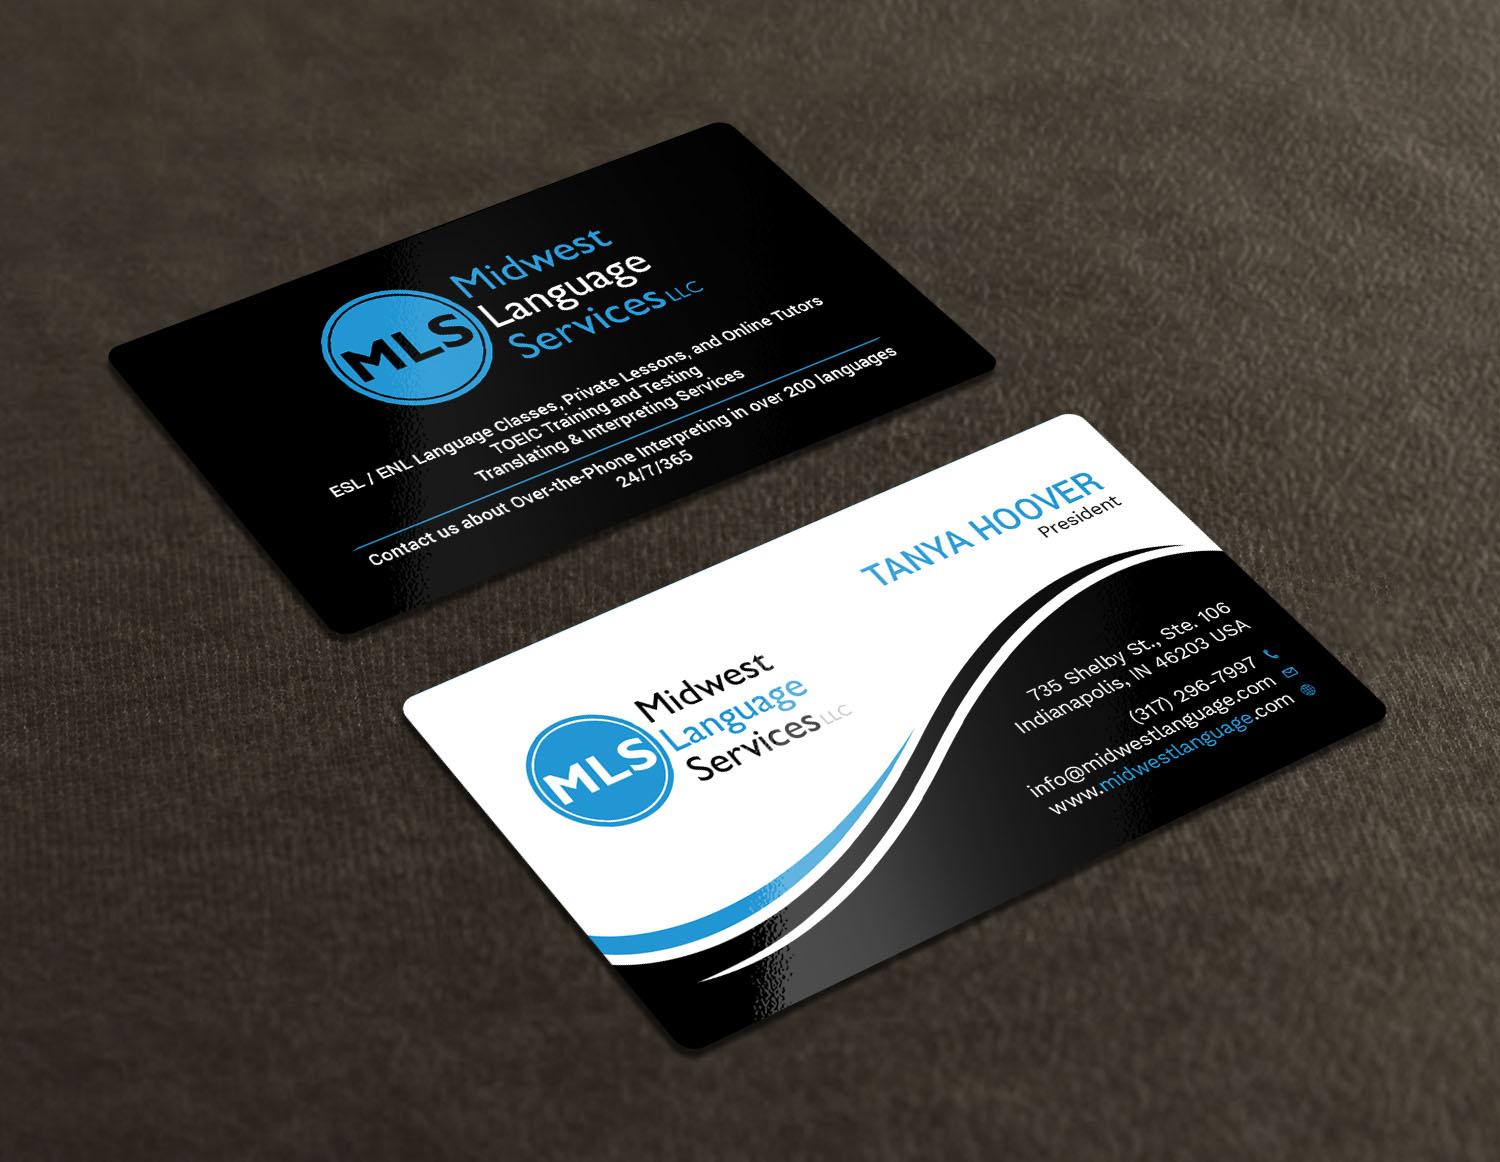 Serious modern business business card design for midwest language business card design by avanger000 for midwest language services llc design 17735776 reheart Choice Image